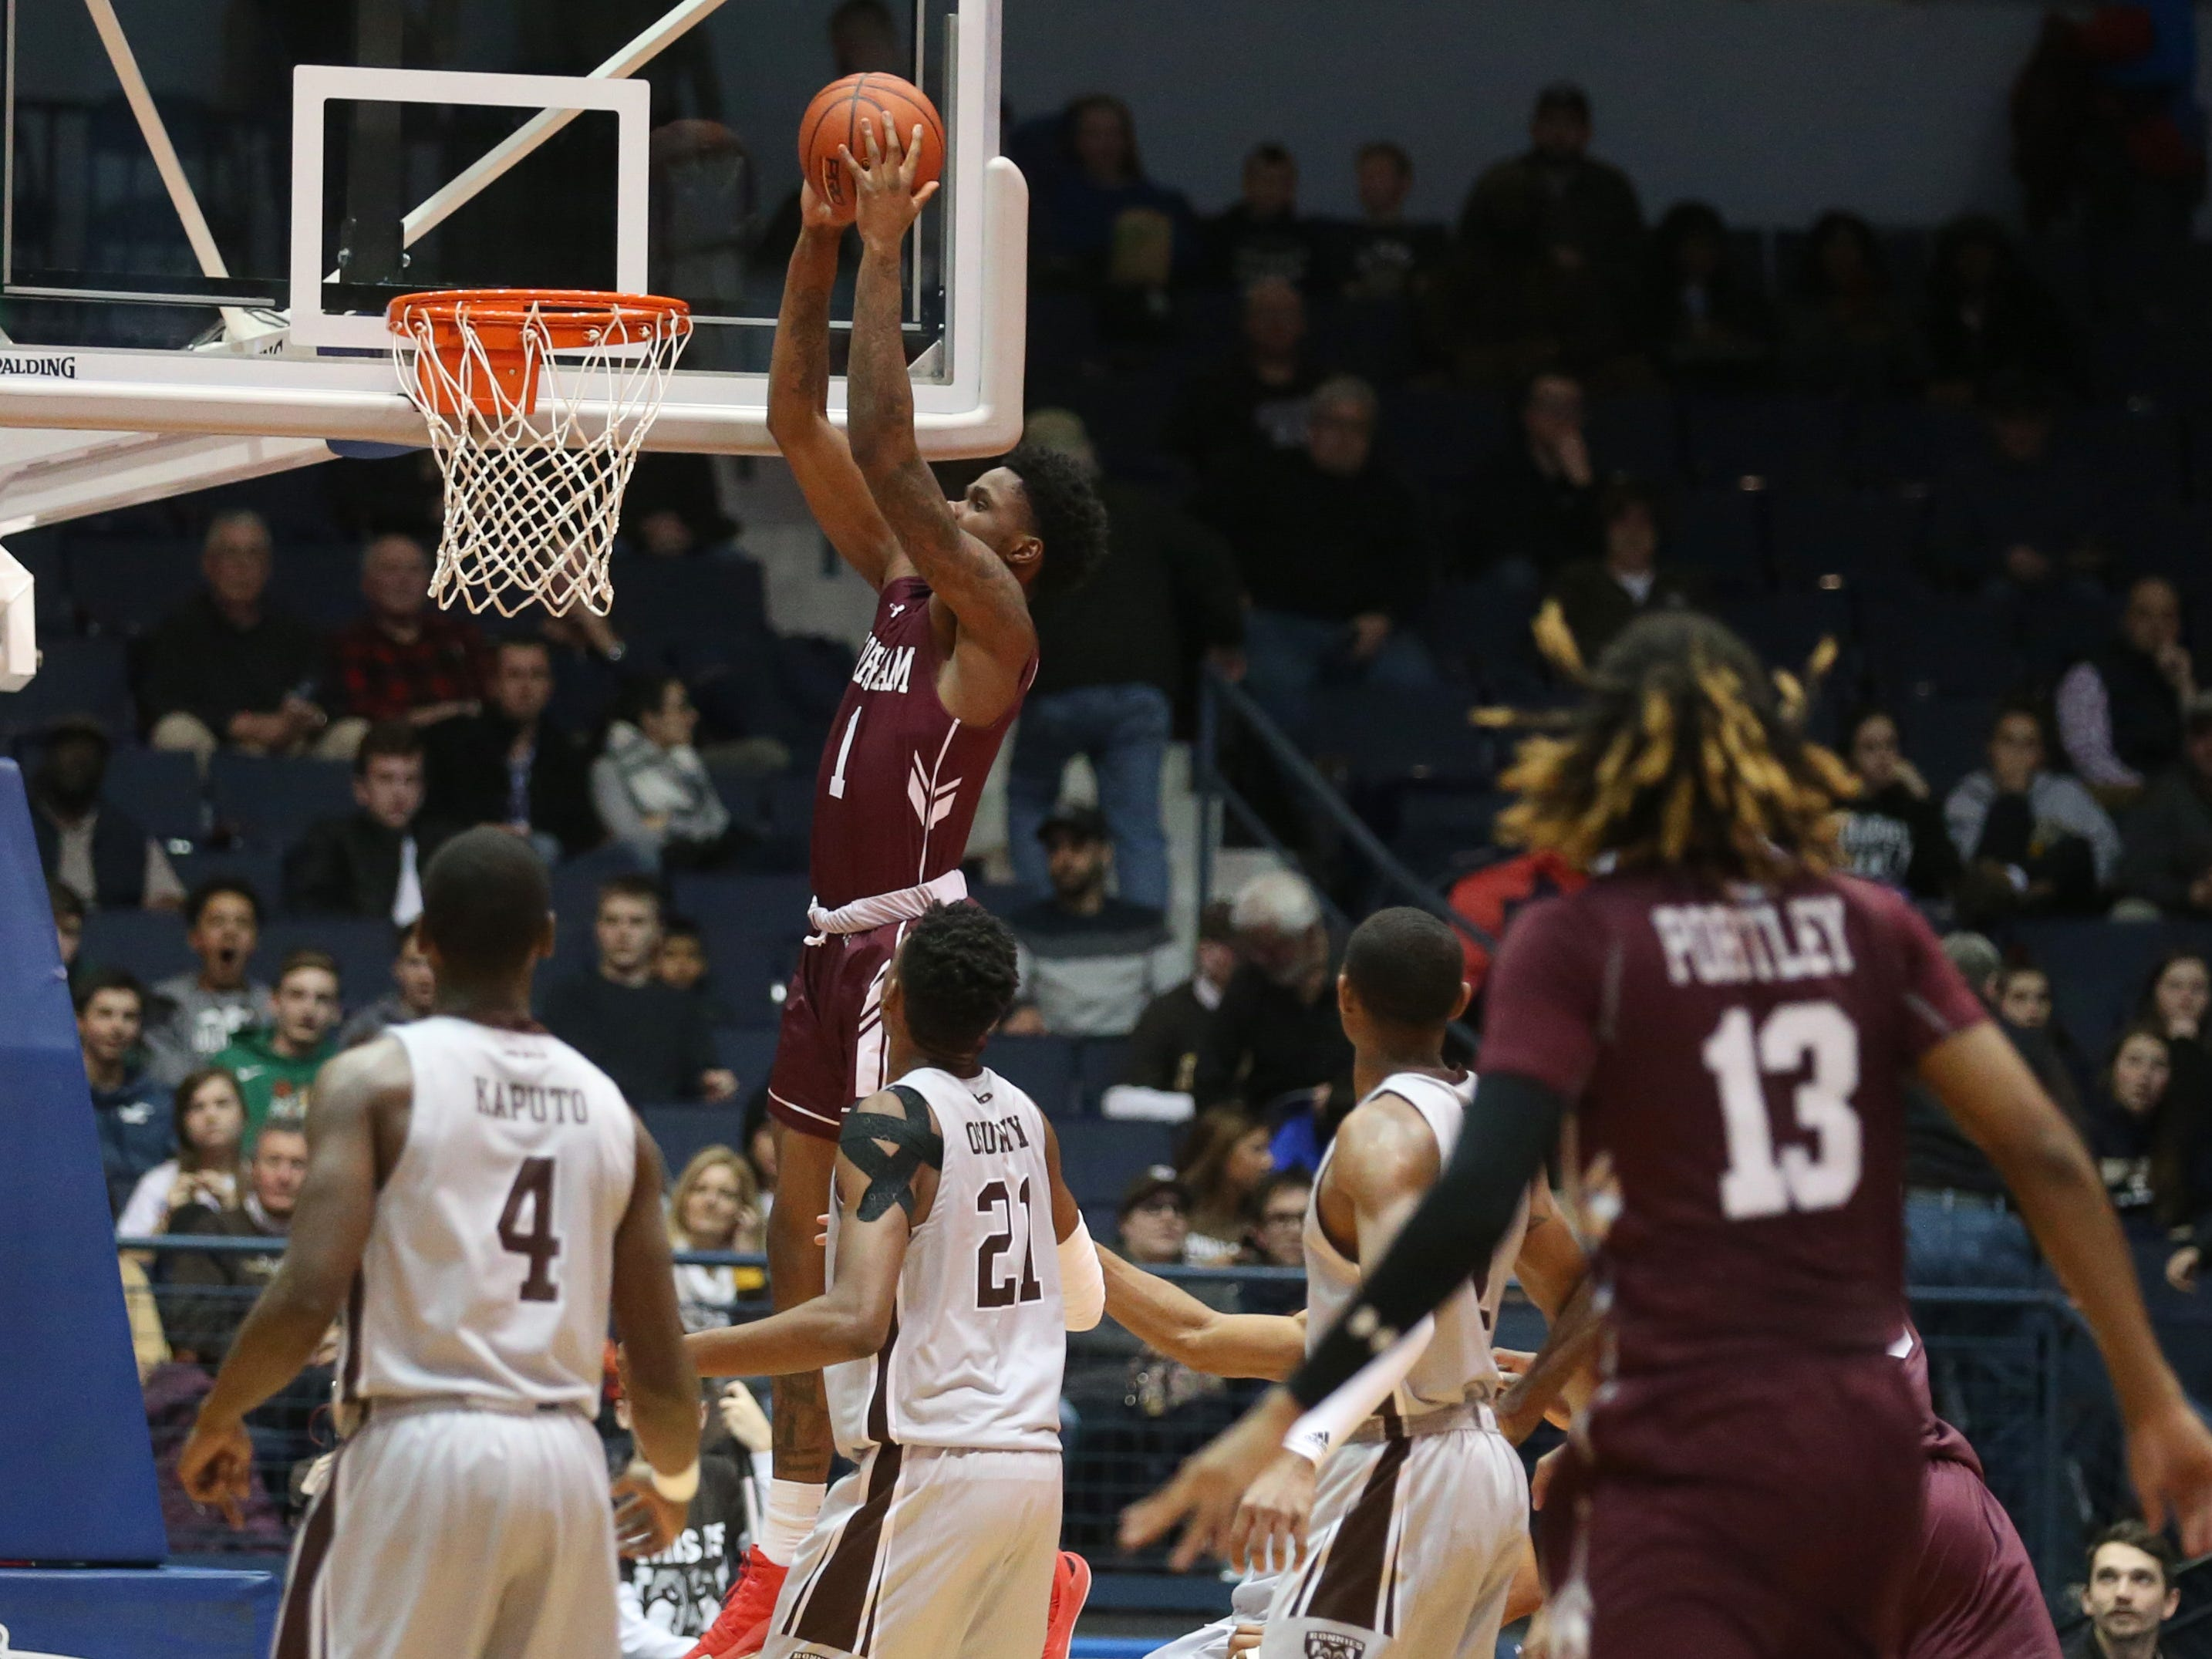 Fordham's Chuba Ohams slips in behind the St. Bonaventure defense for an alley-oop dunk late in second half.